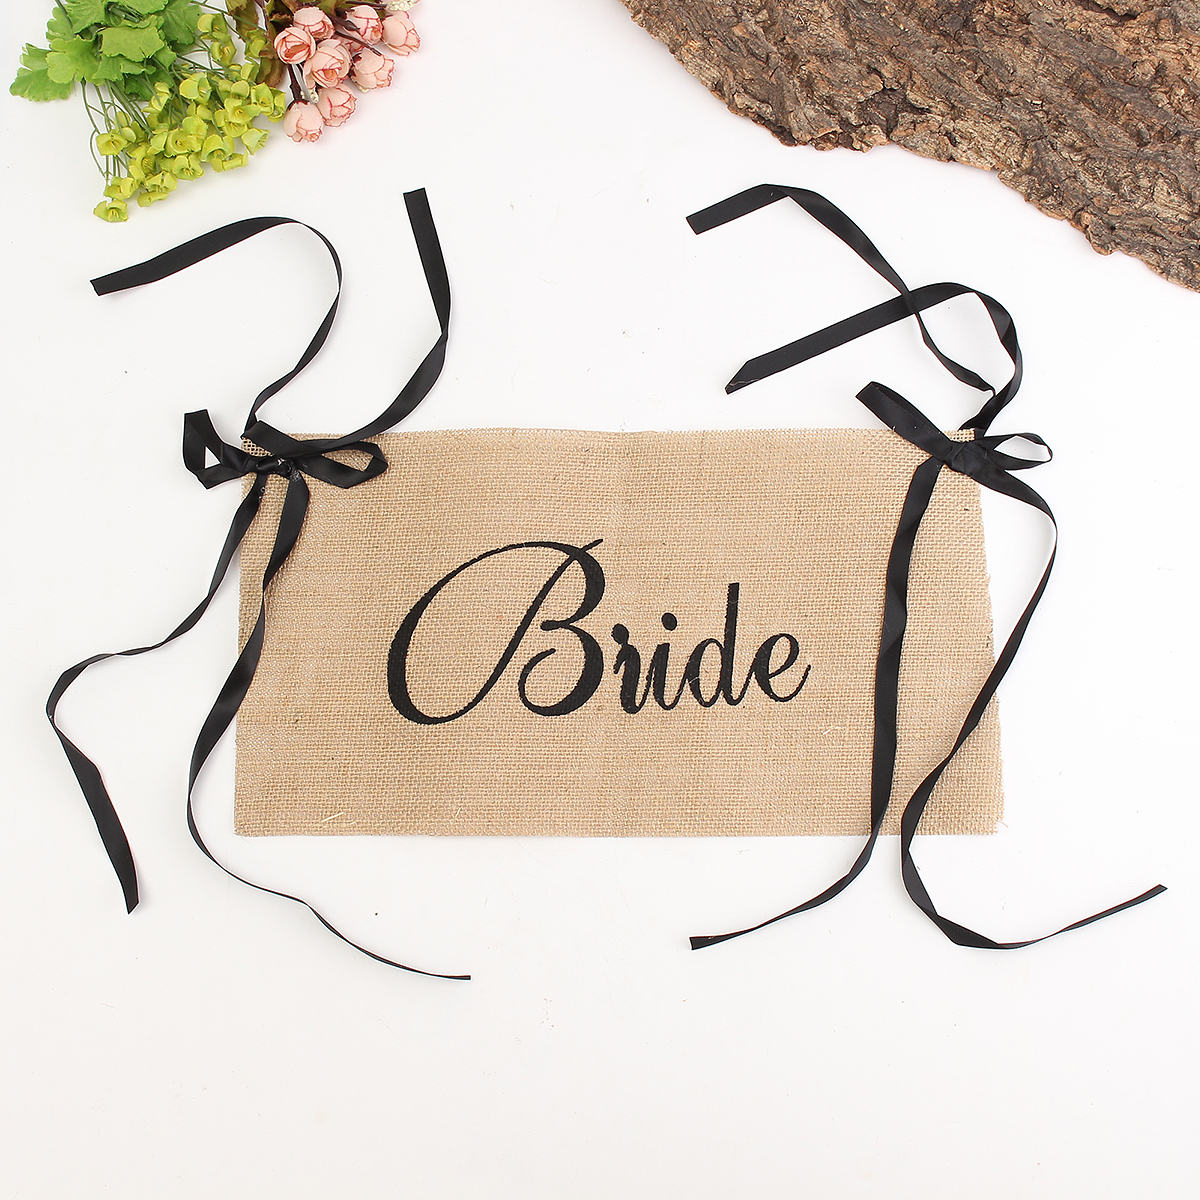 Bride Groom Wedding Chair Bunting Hessian Burlap Banner Party Decoration